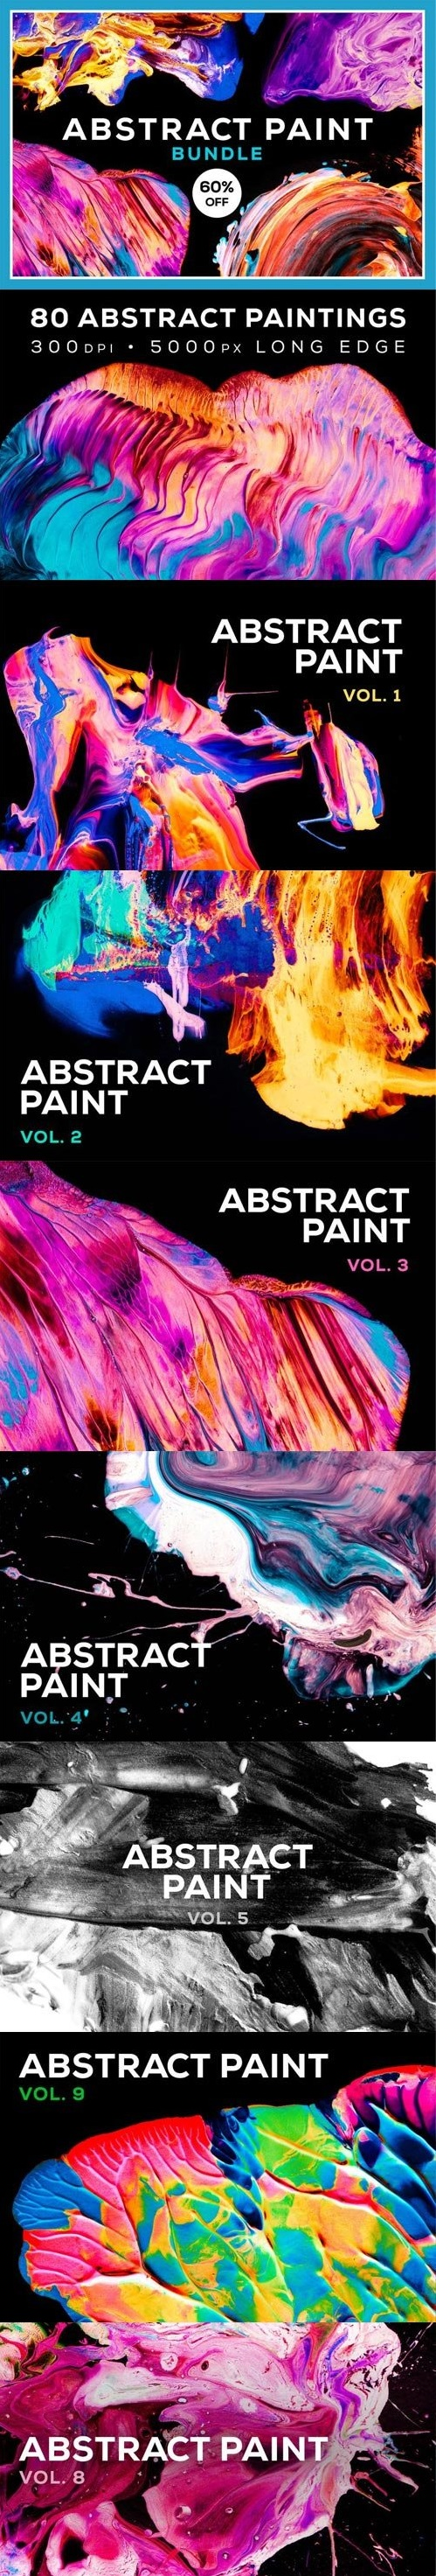 Abstract Paint Bundle